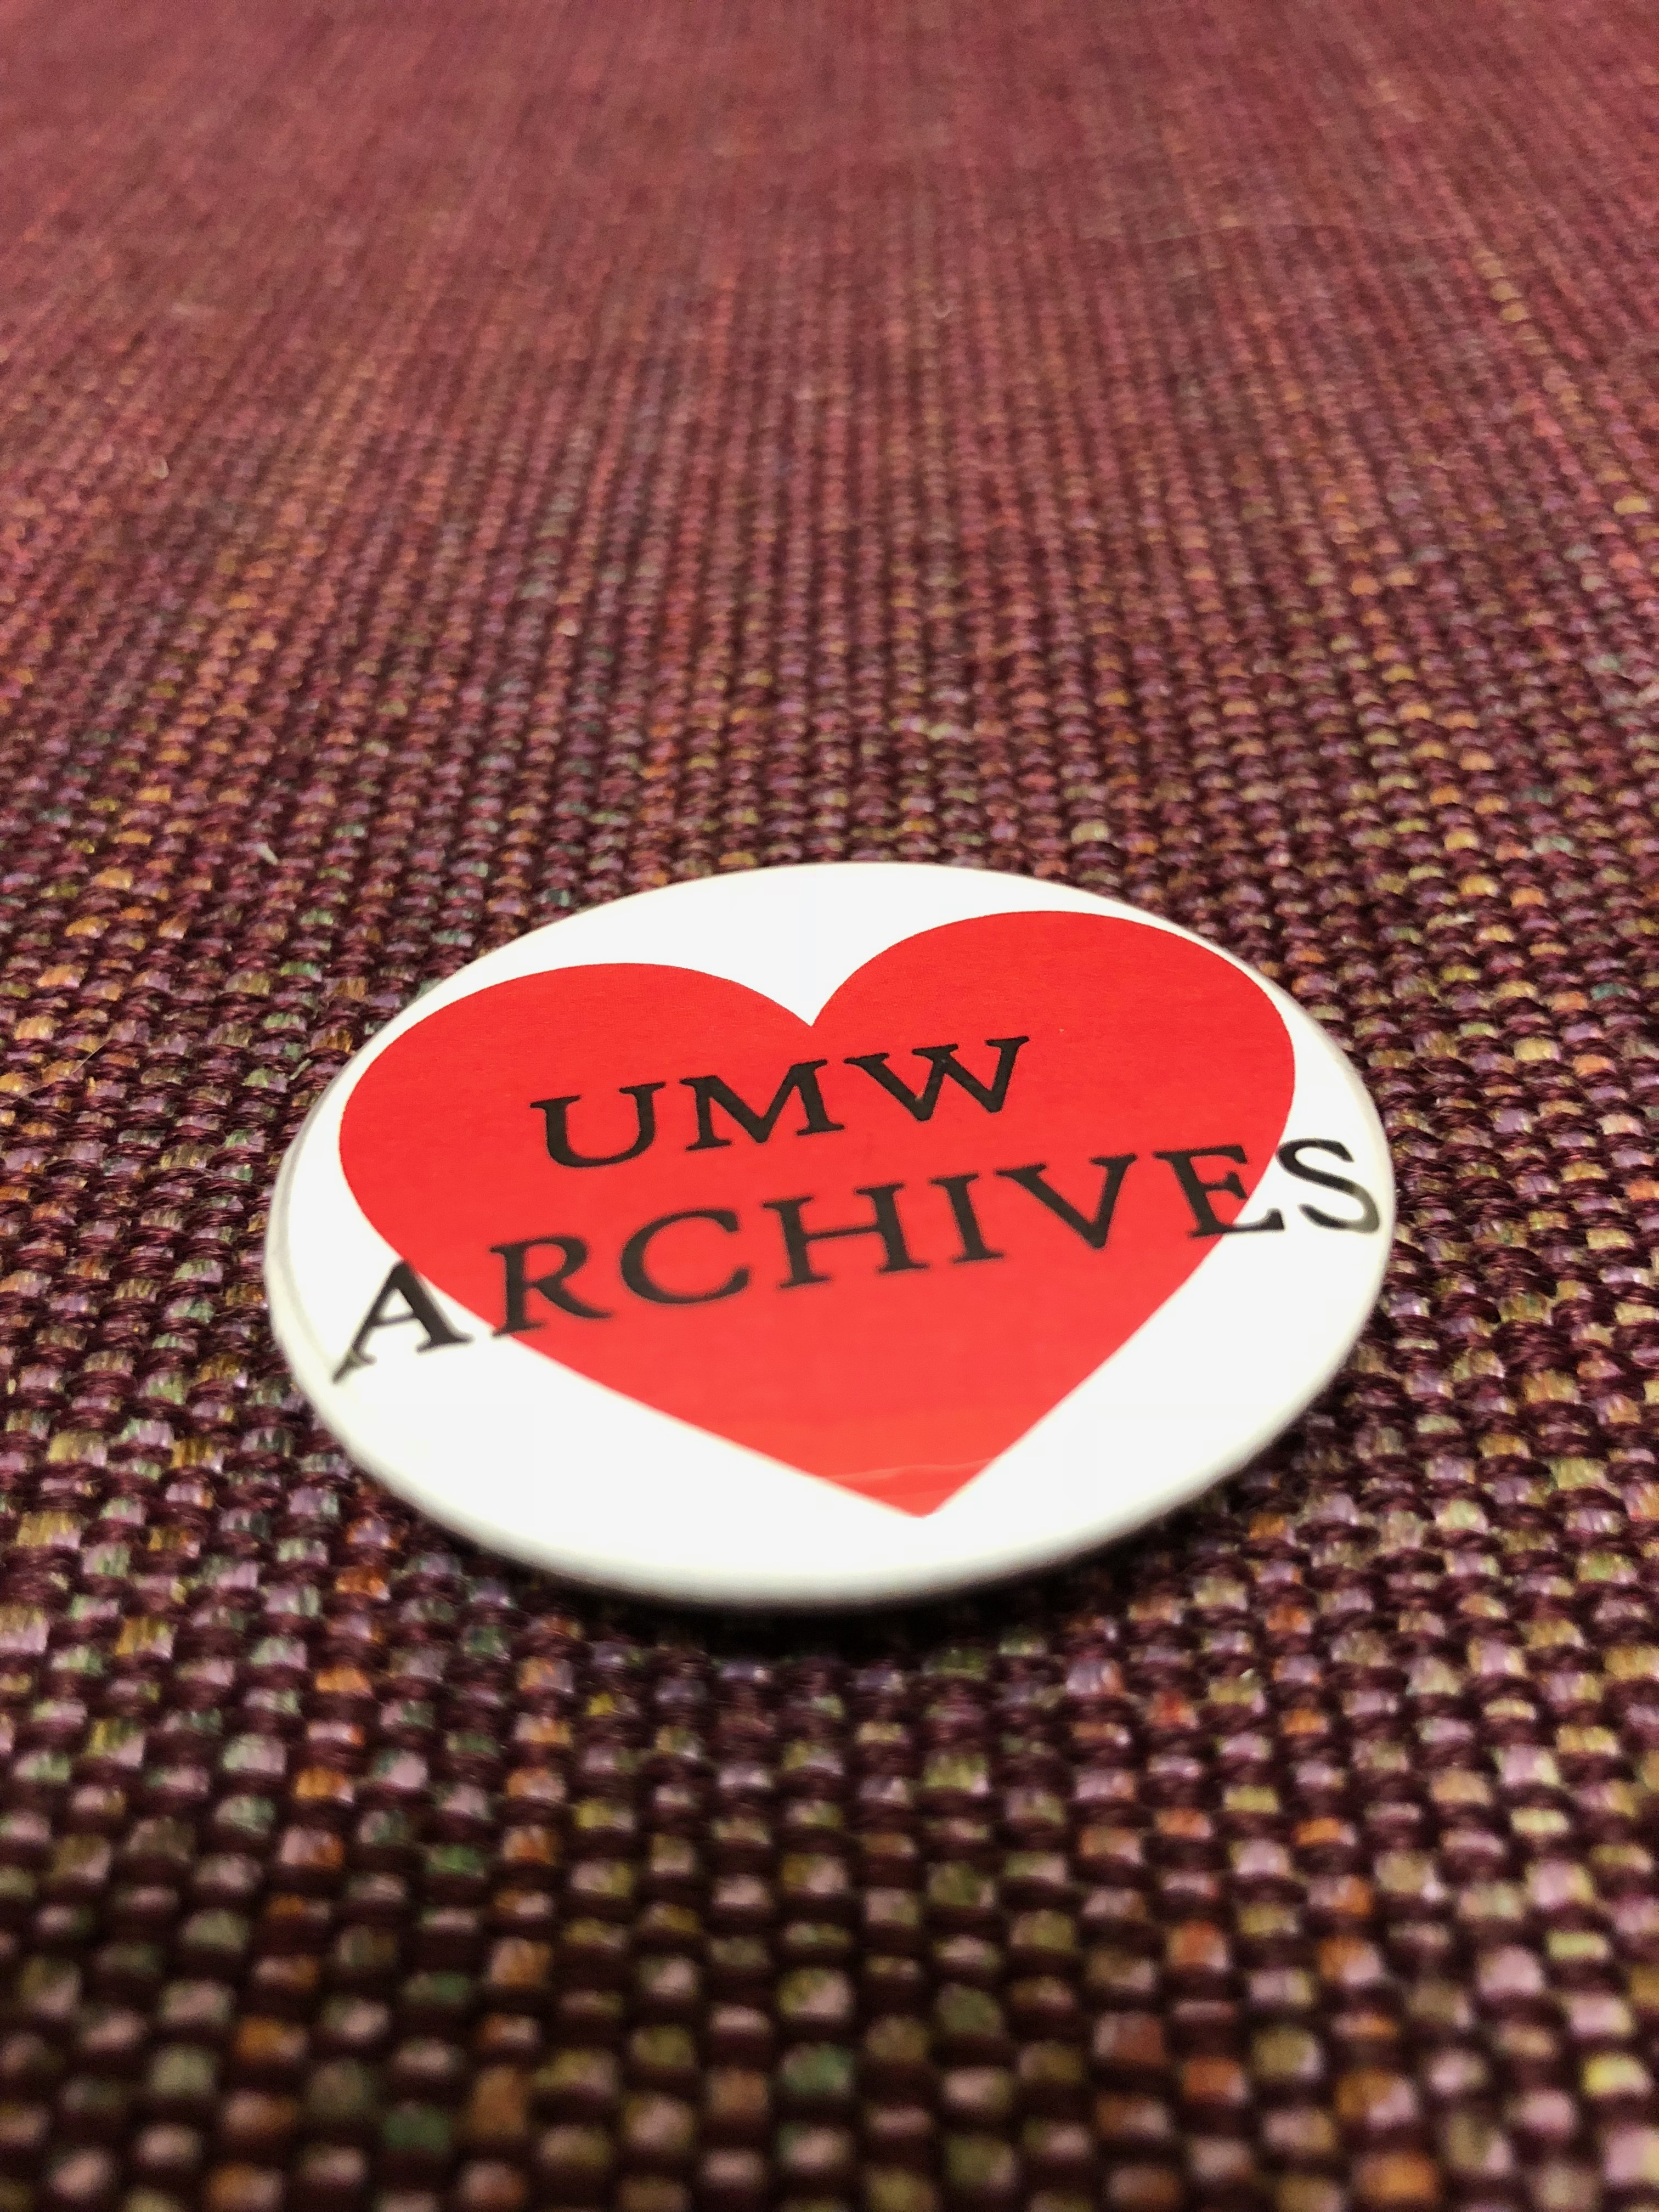 """Closeup image of a button that reads """"UMW Archives"""" inside a red heart."""